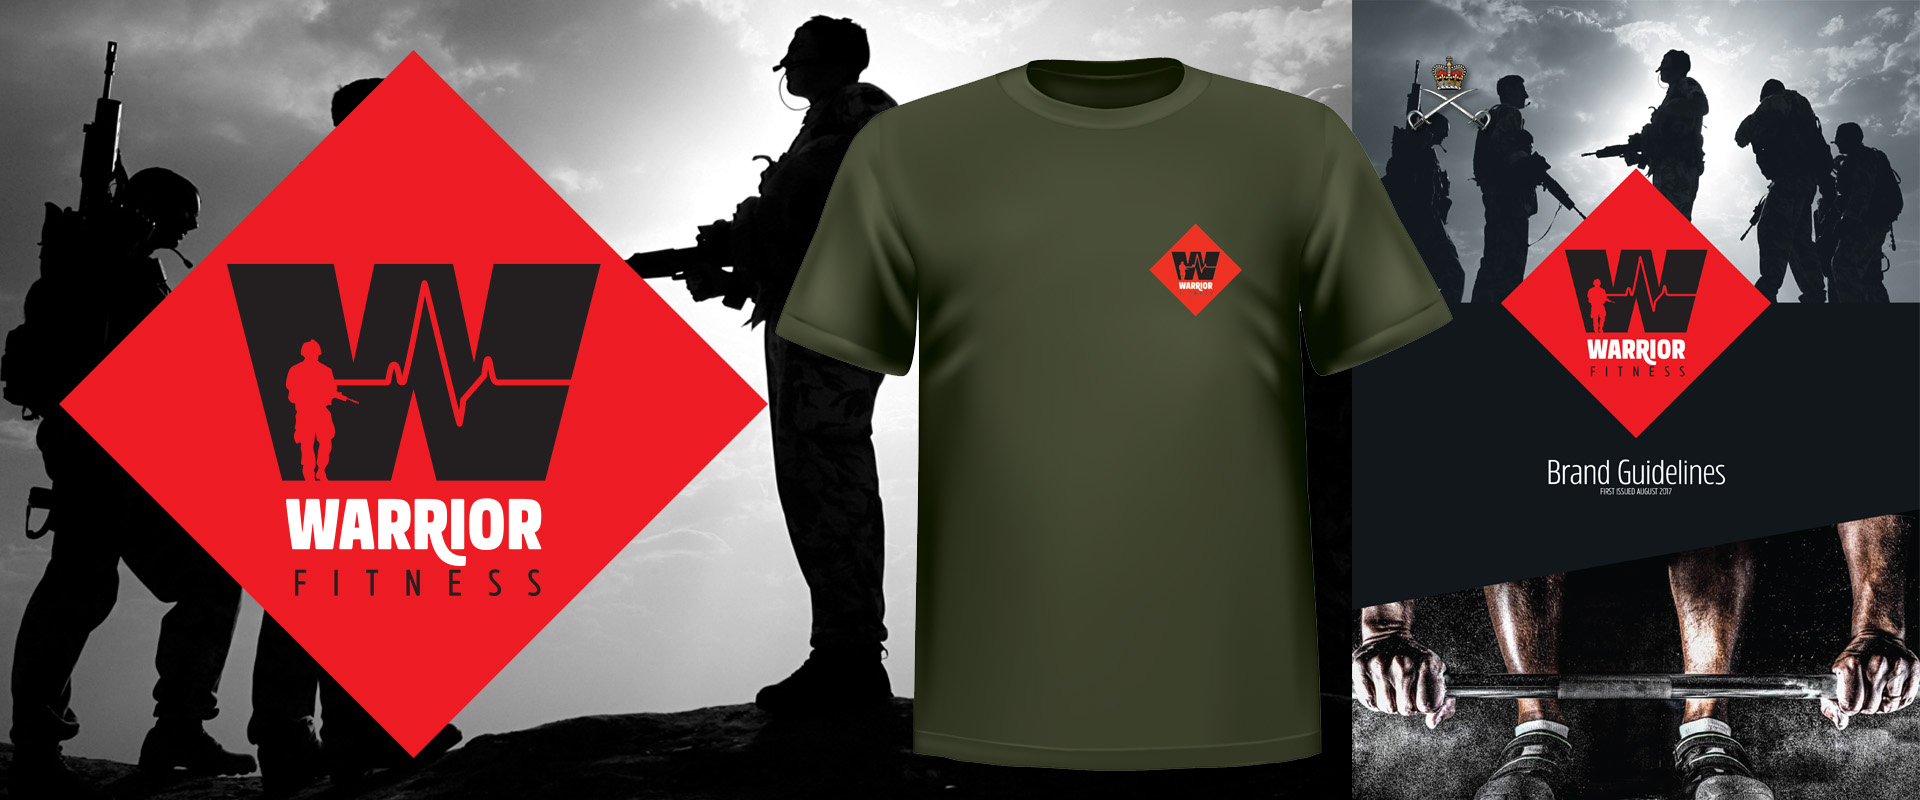 British Army Warrior Fitness Brand